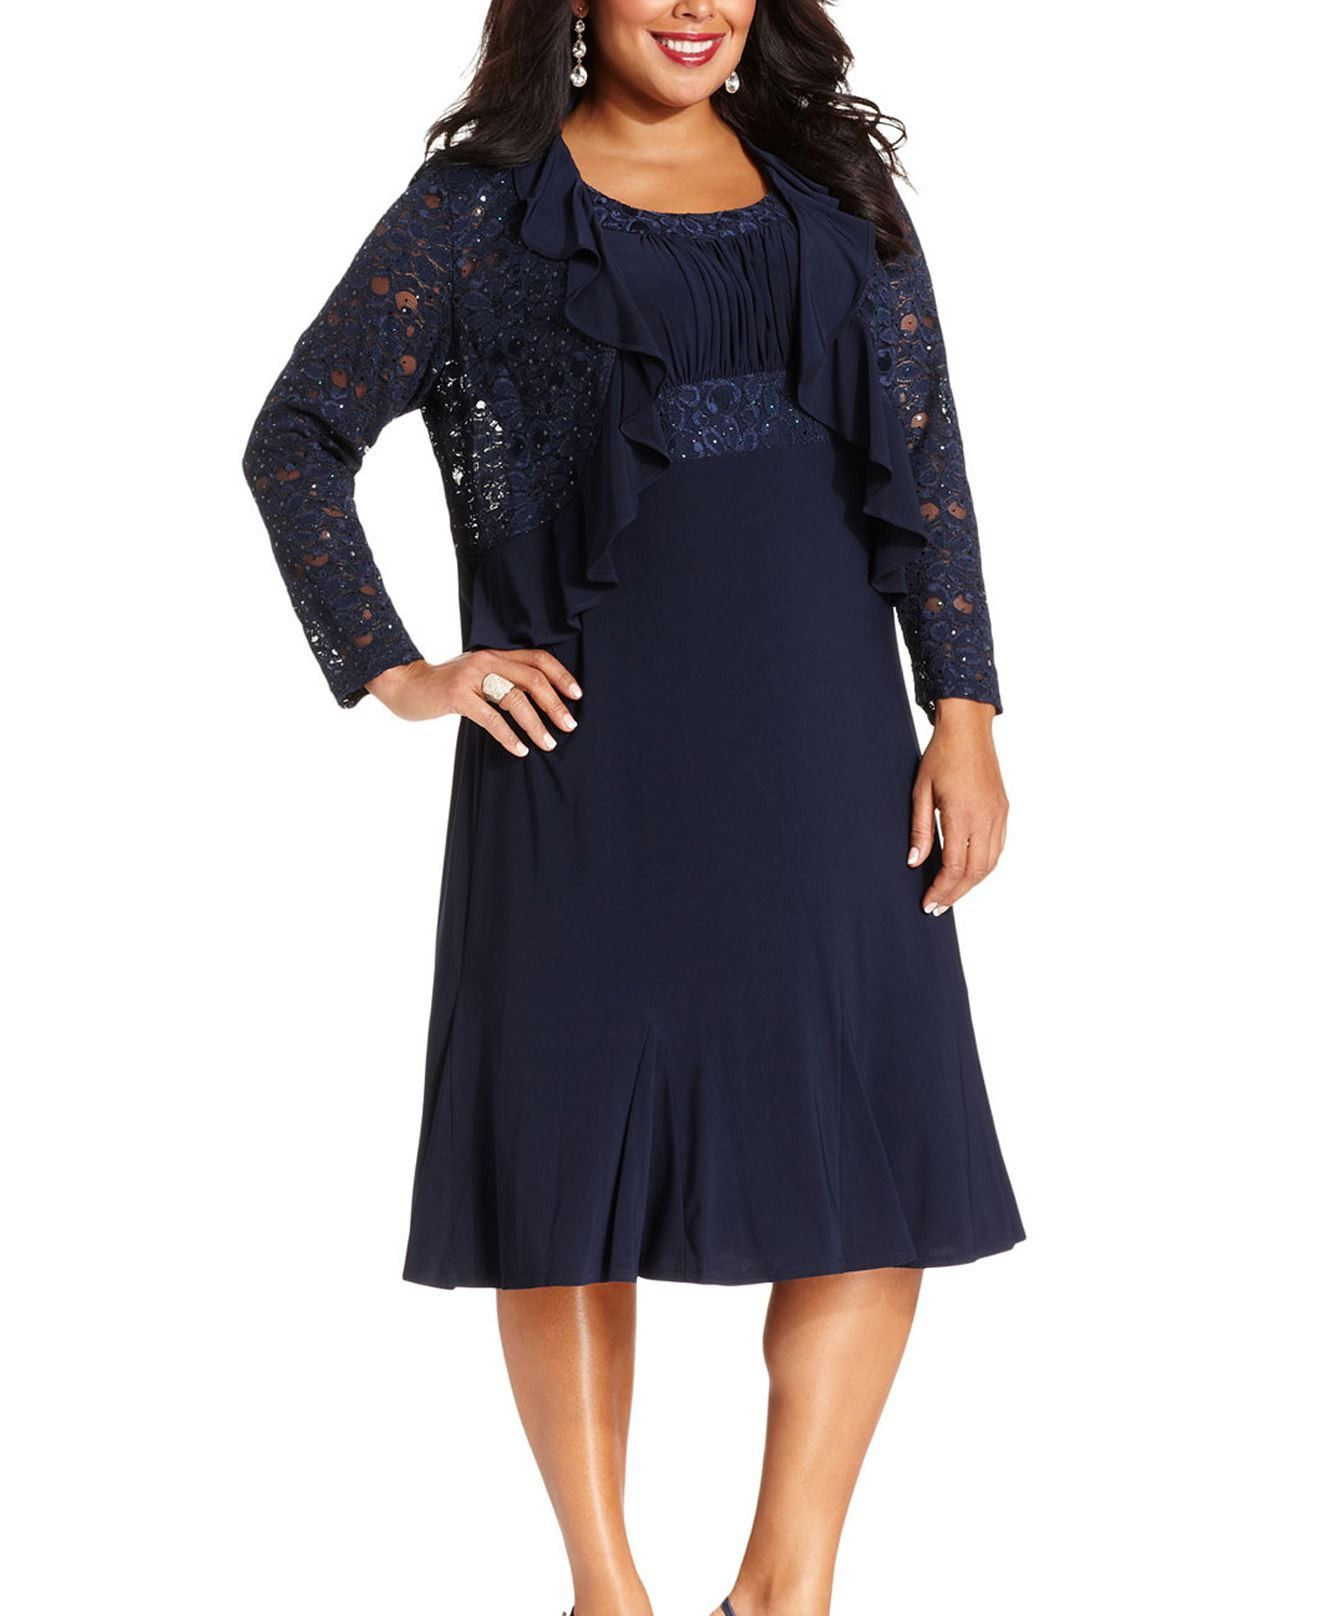 RM Richards Plus Size Lace Sequin Navy Blue Dress - Navy/Royal | for ...